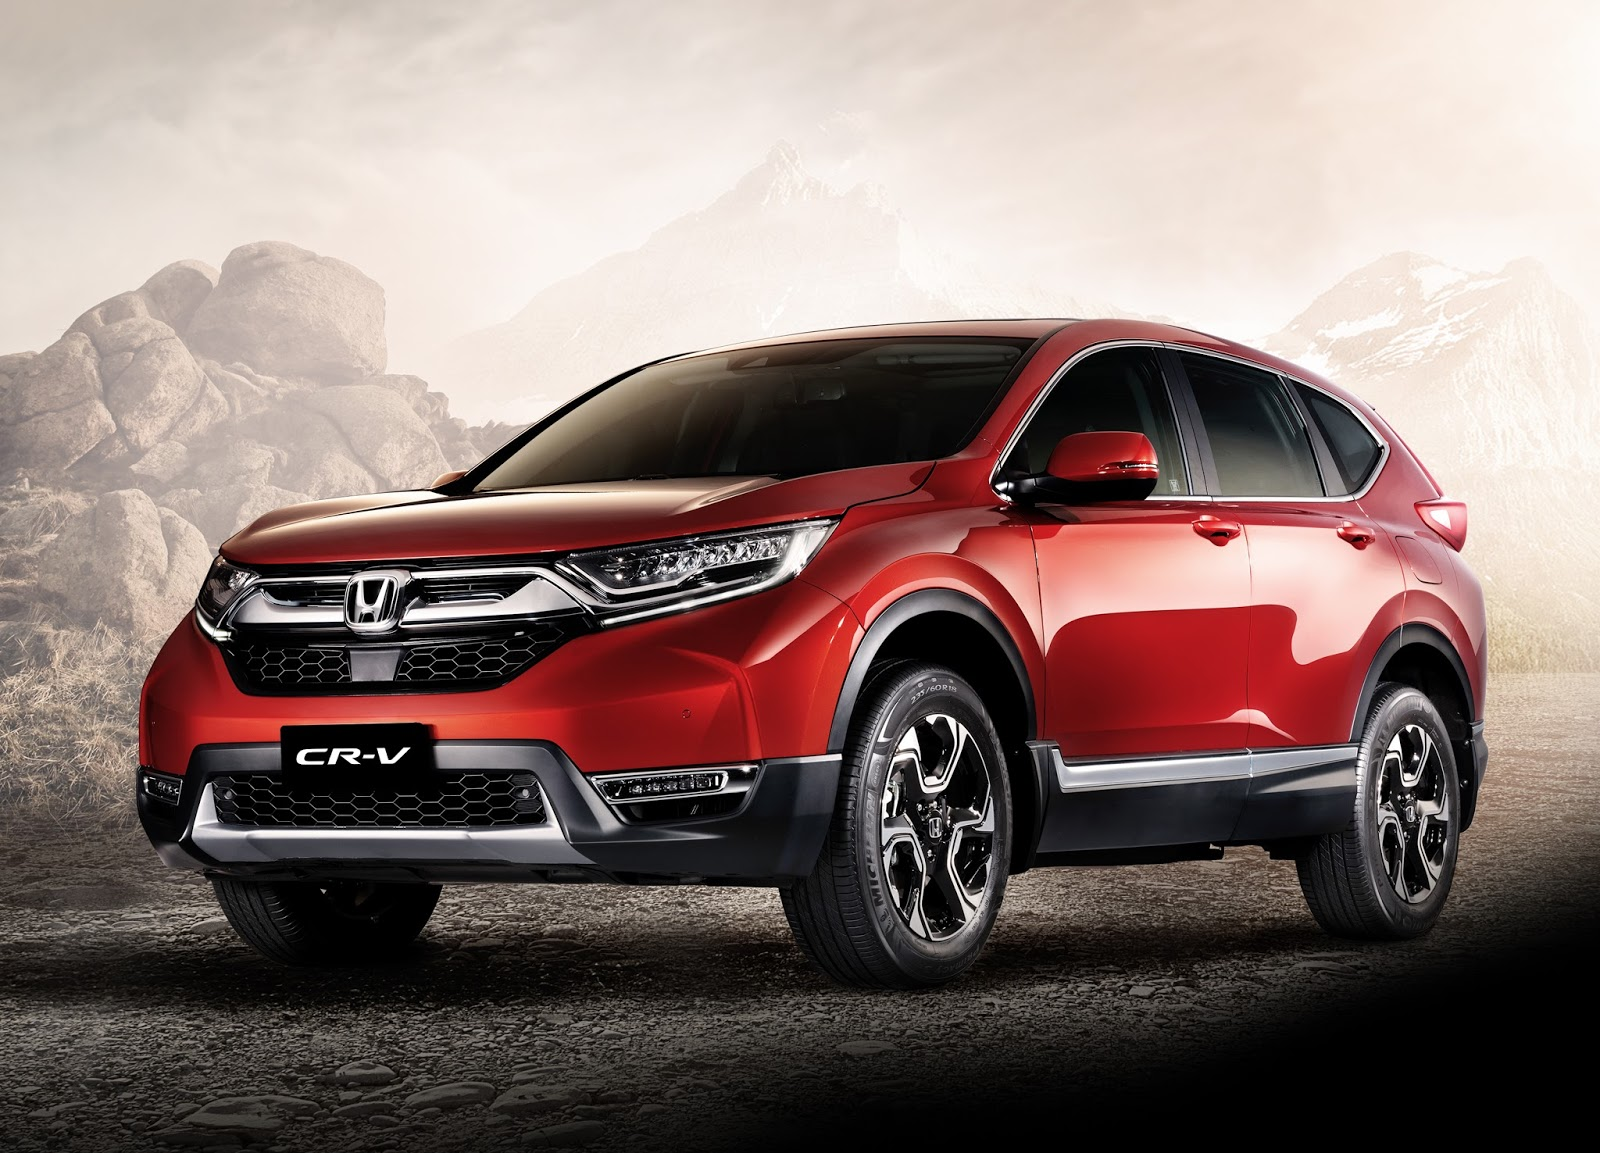 8 2017 honda cars philippines inc hcpi honda s automobile business unit in the philippines unveils the much anticipated all new cr v the first ever